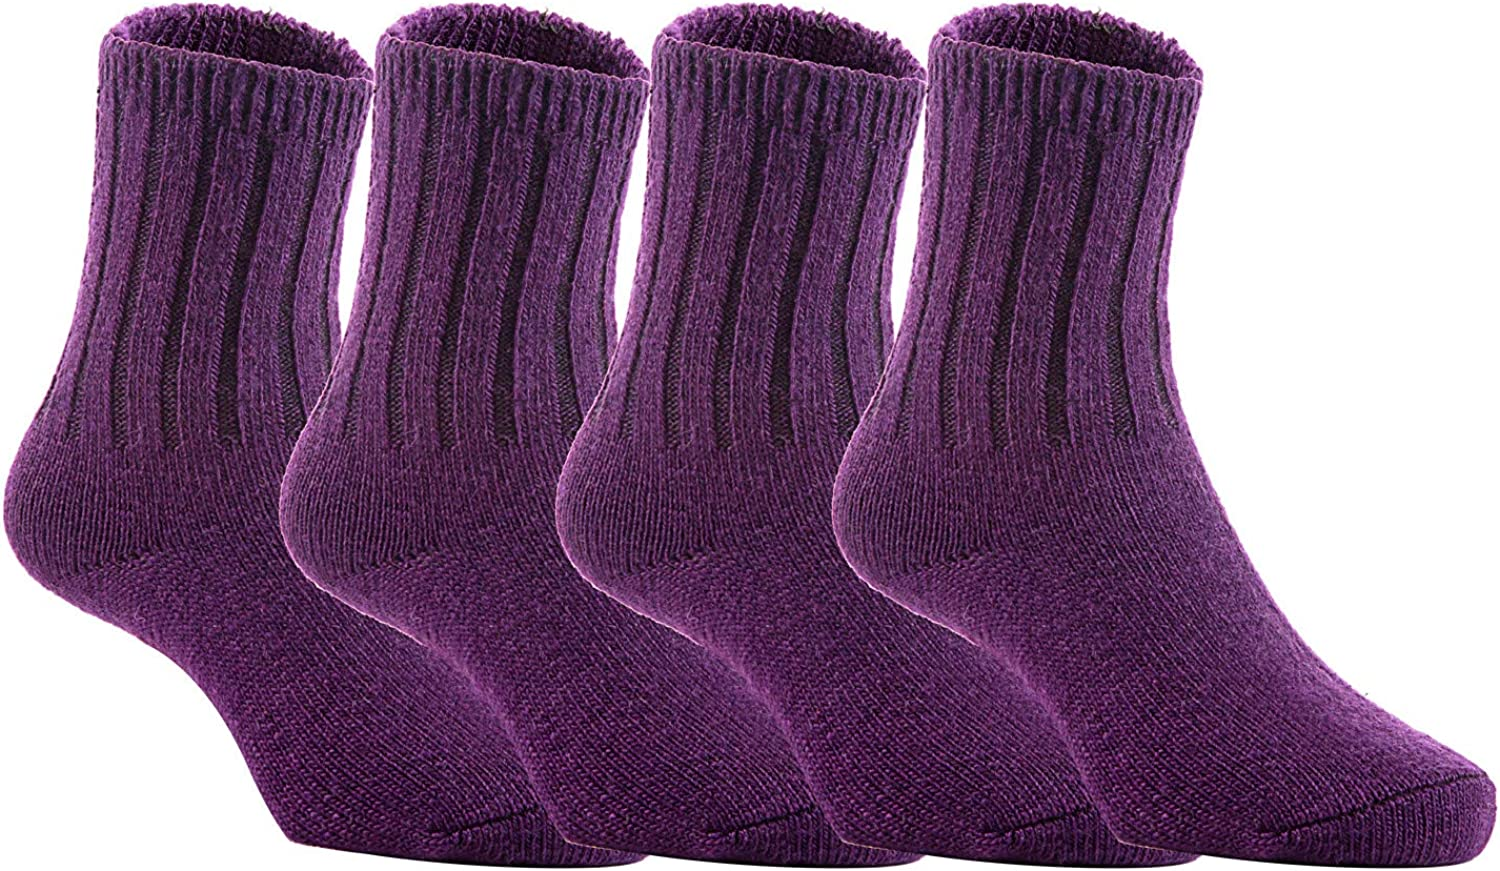 Stretchable Thick /& Warm Socks for Kids Solid 0Y-2Y Purple Durable Lovely Annie 4 Pairs Childrens Wool Socks Comfy